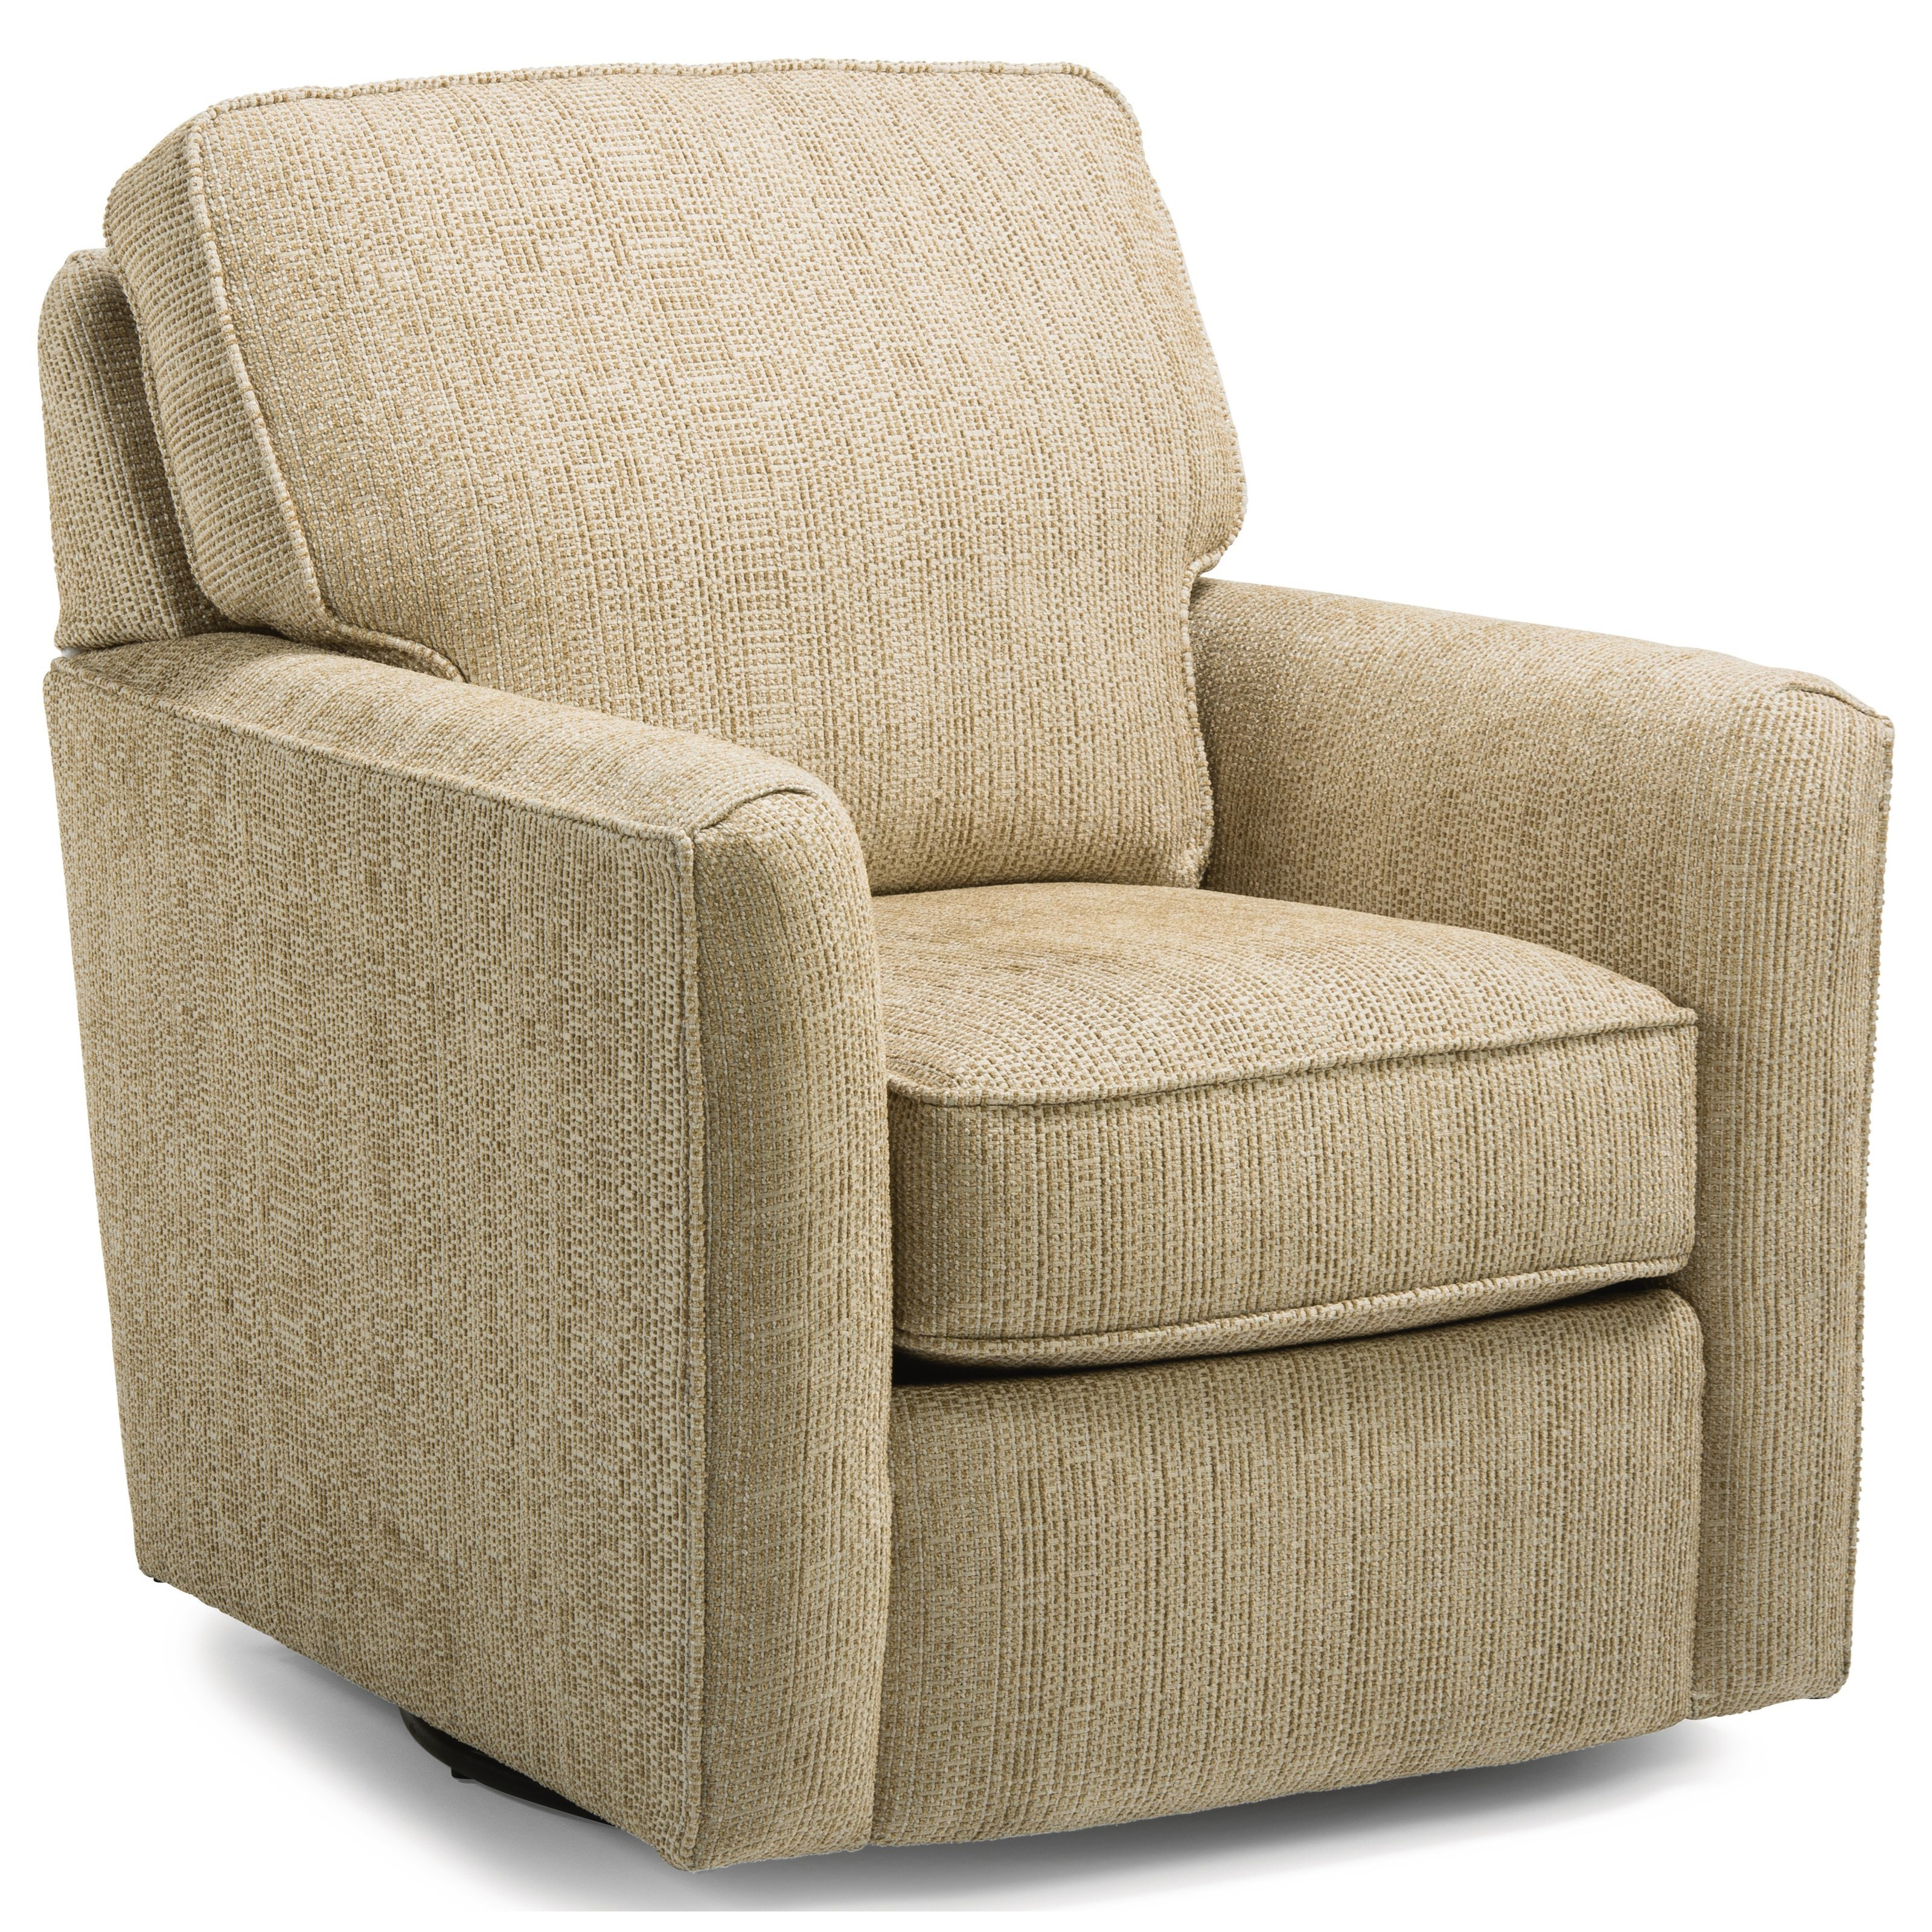 Accents Swivel Chair by Flexsteel at Steger's Furniture